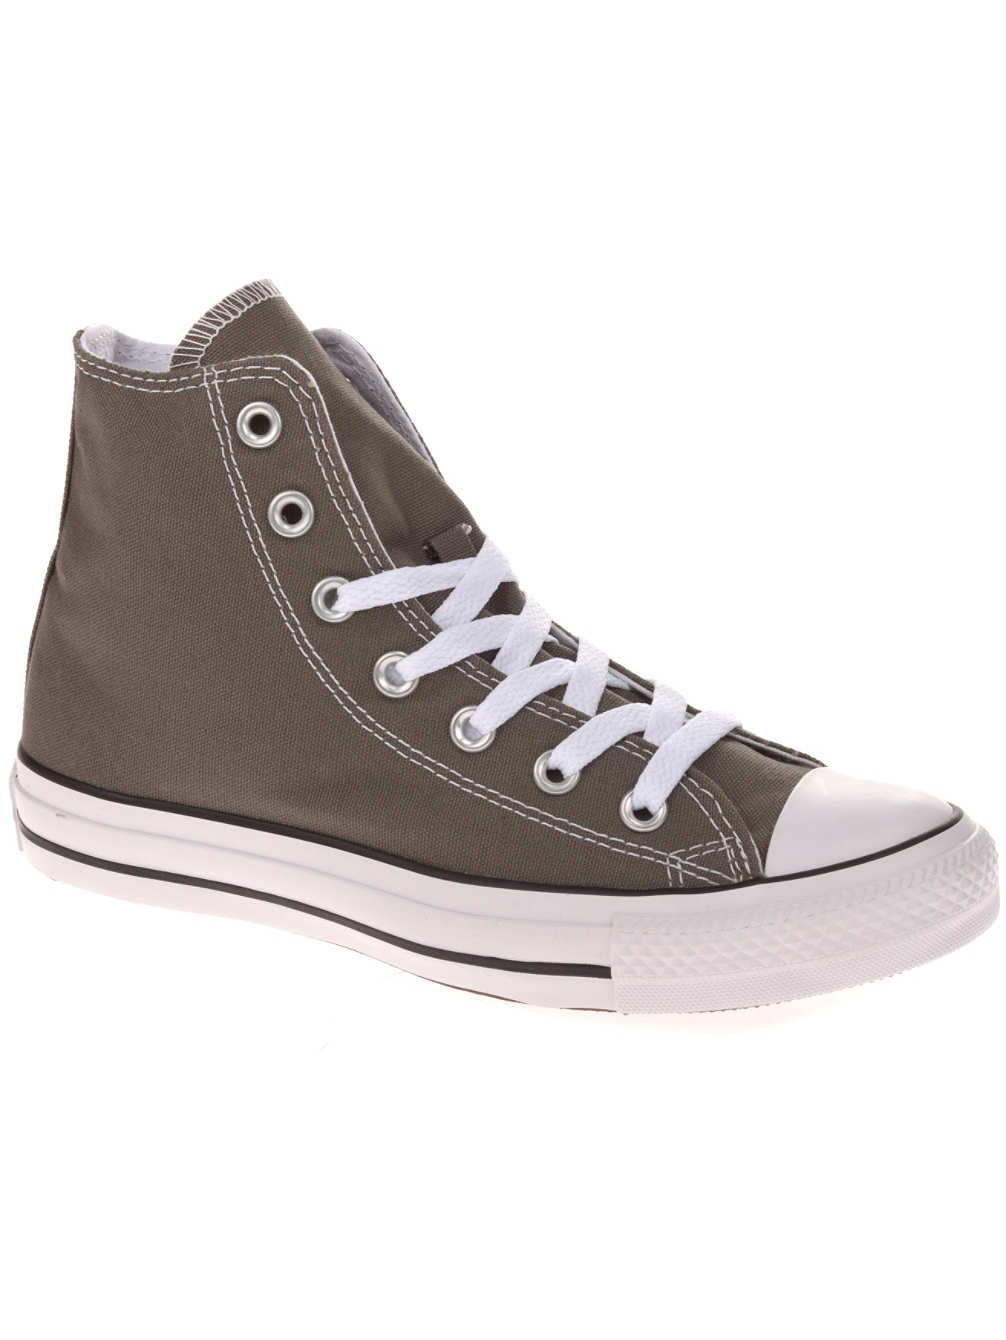 Converse Chuck Taylor All Star High Top Charcoal 4 D(M) US